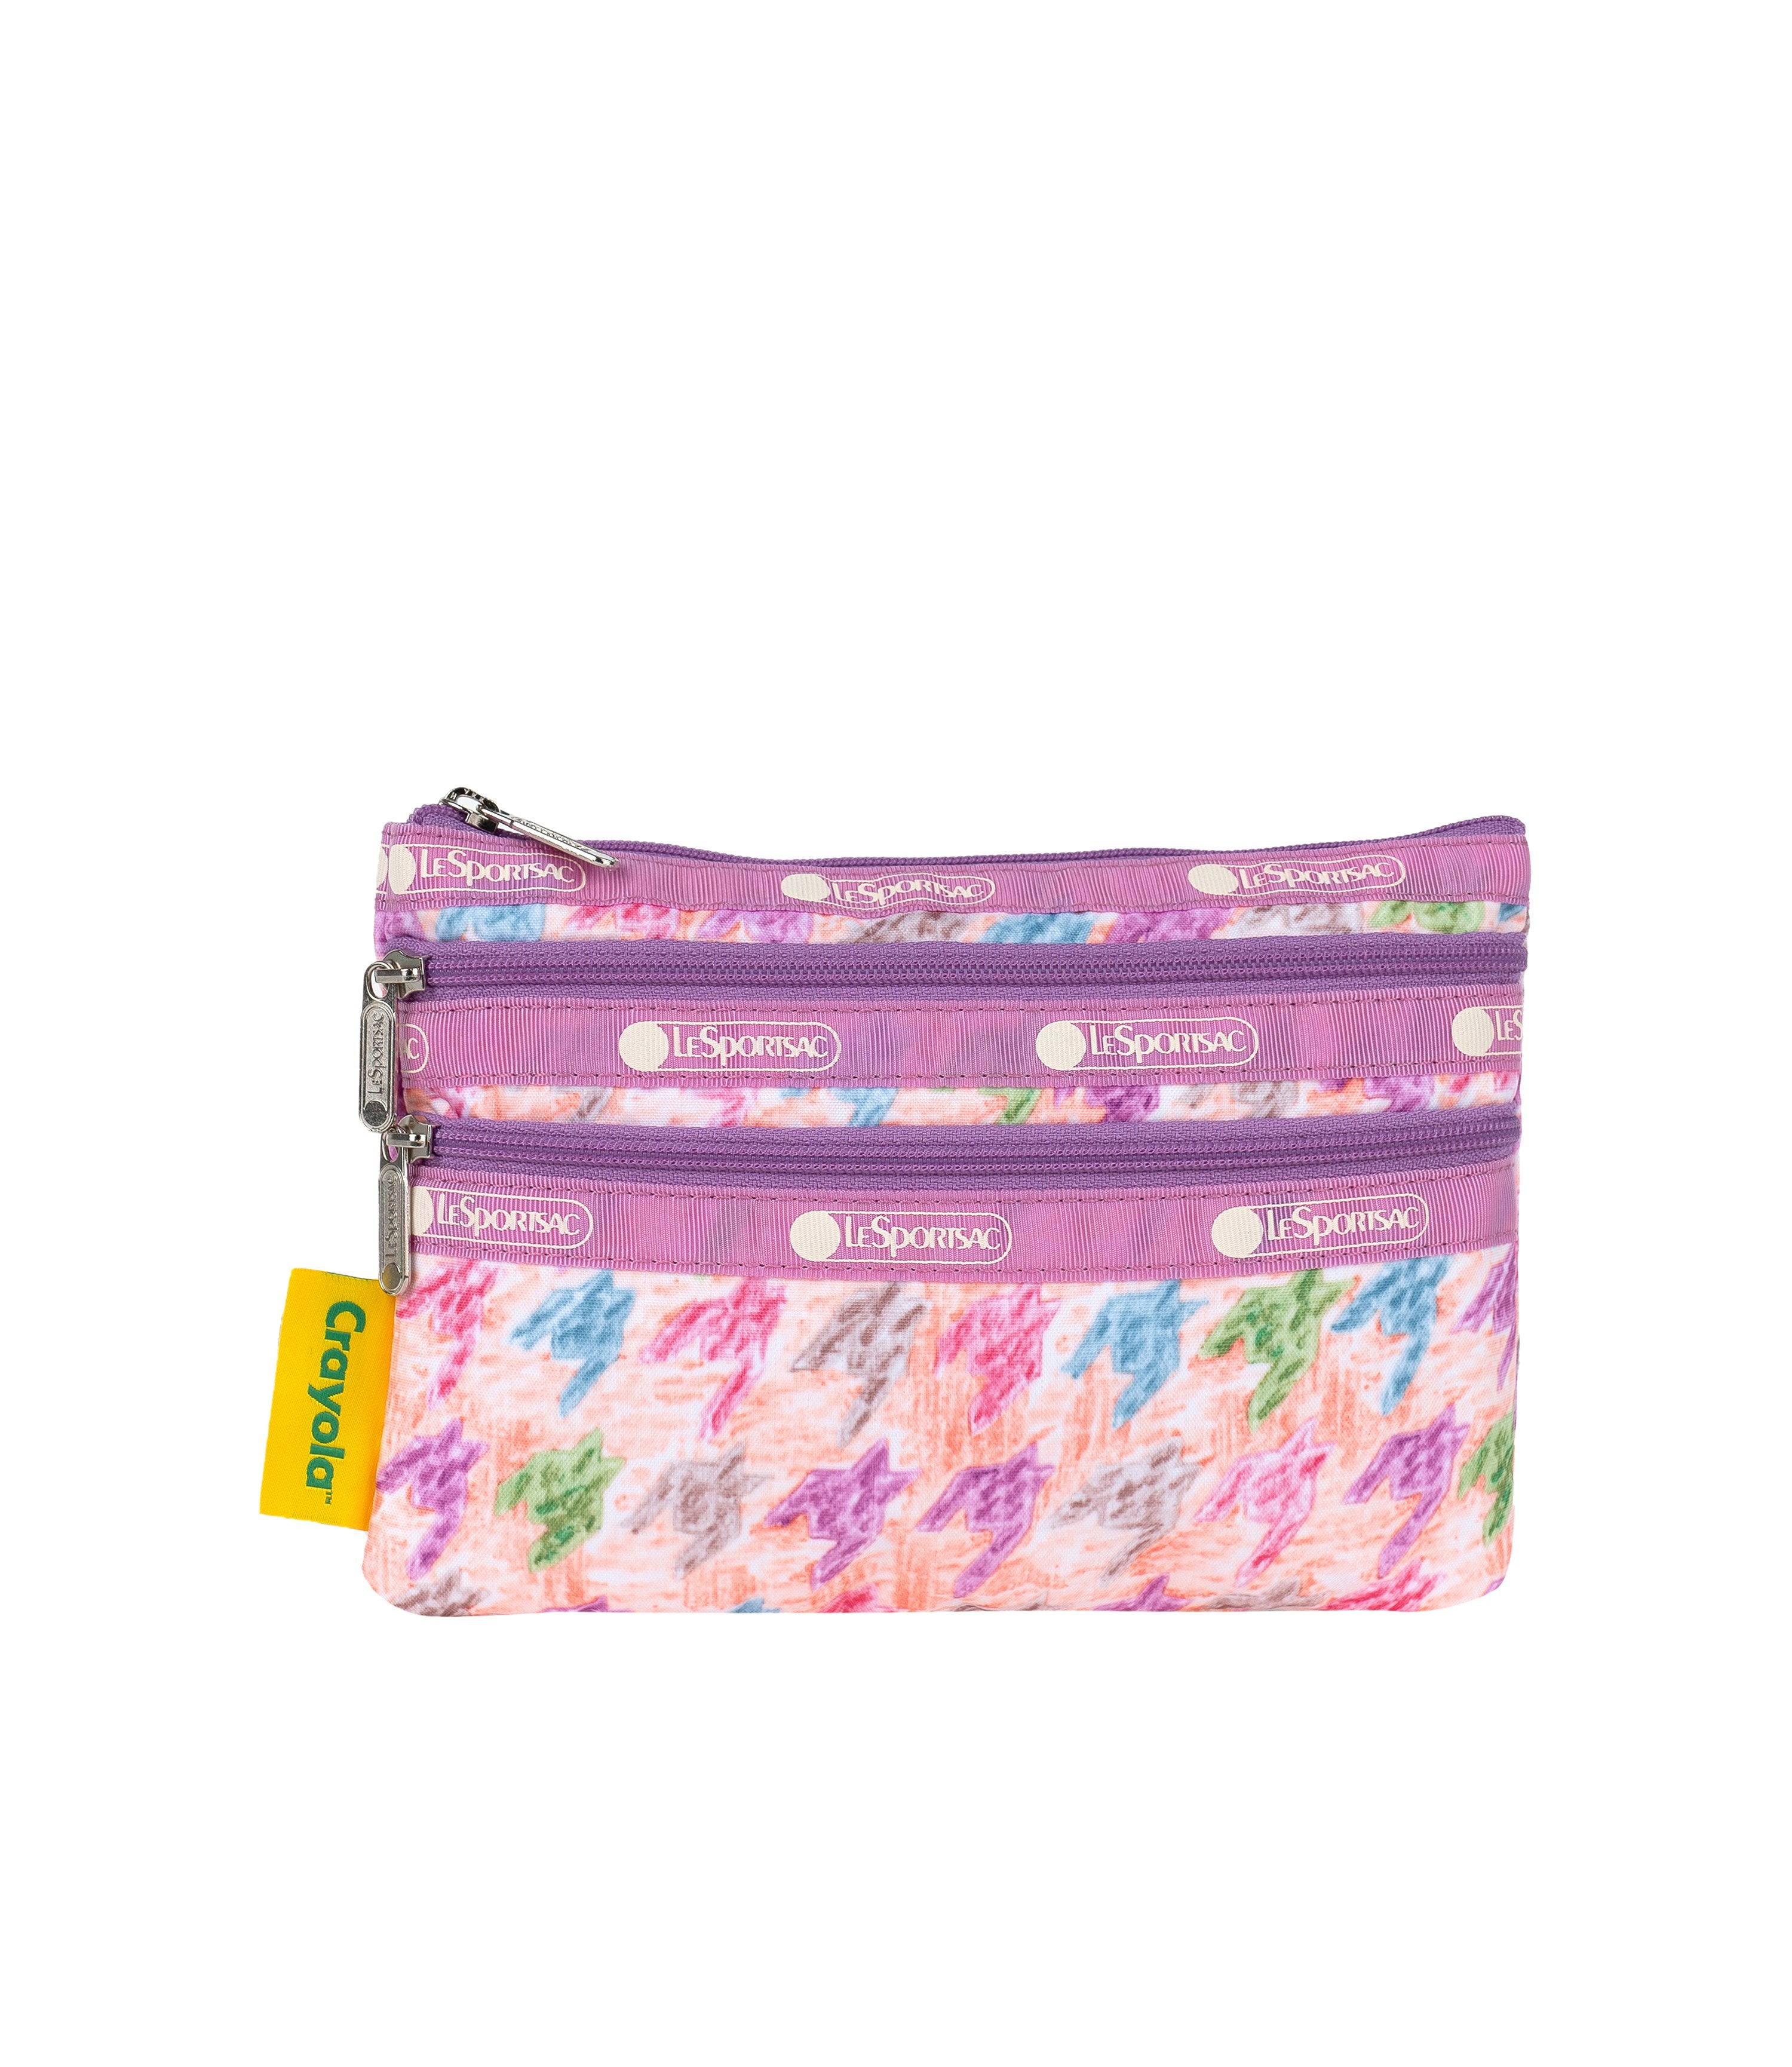 LeSportsac - Accessories - 3-Zip Cosmetic - Crayon Box Check